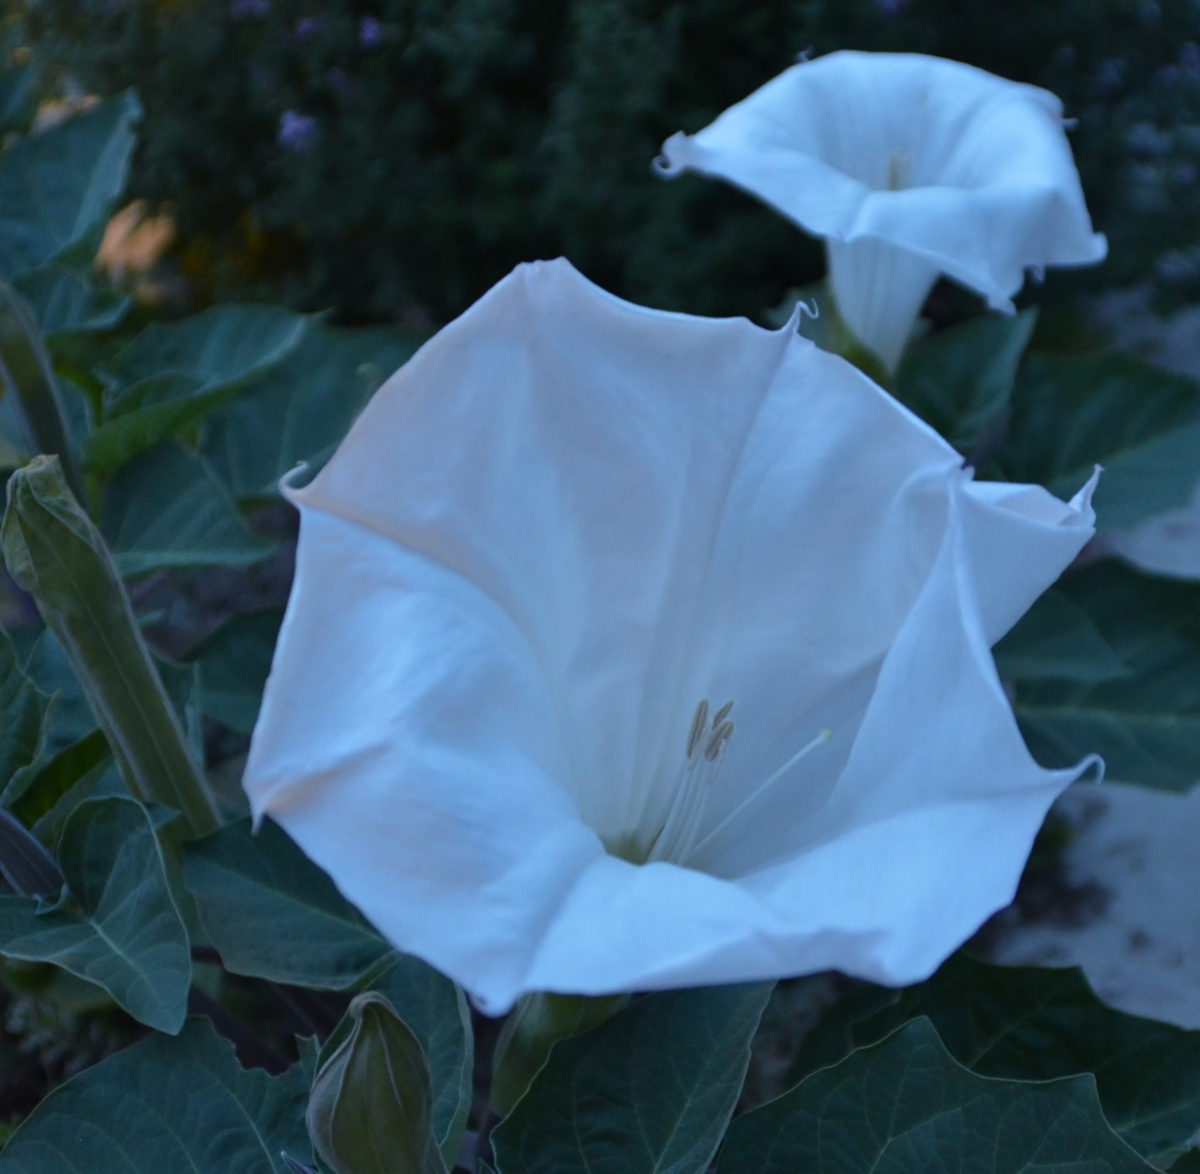 Moon Flowers By Moonlight Heart Of A Southern Woman